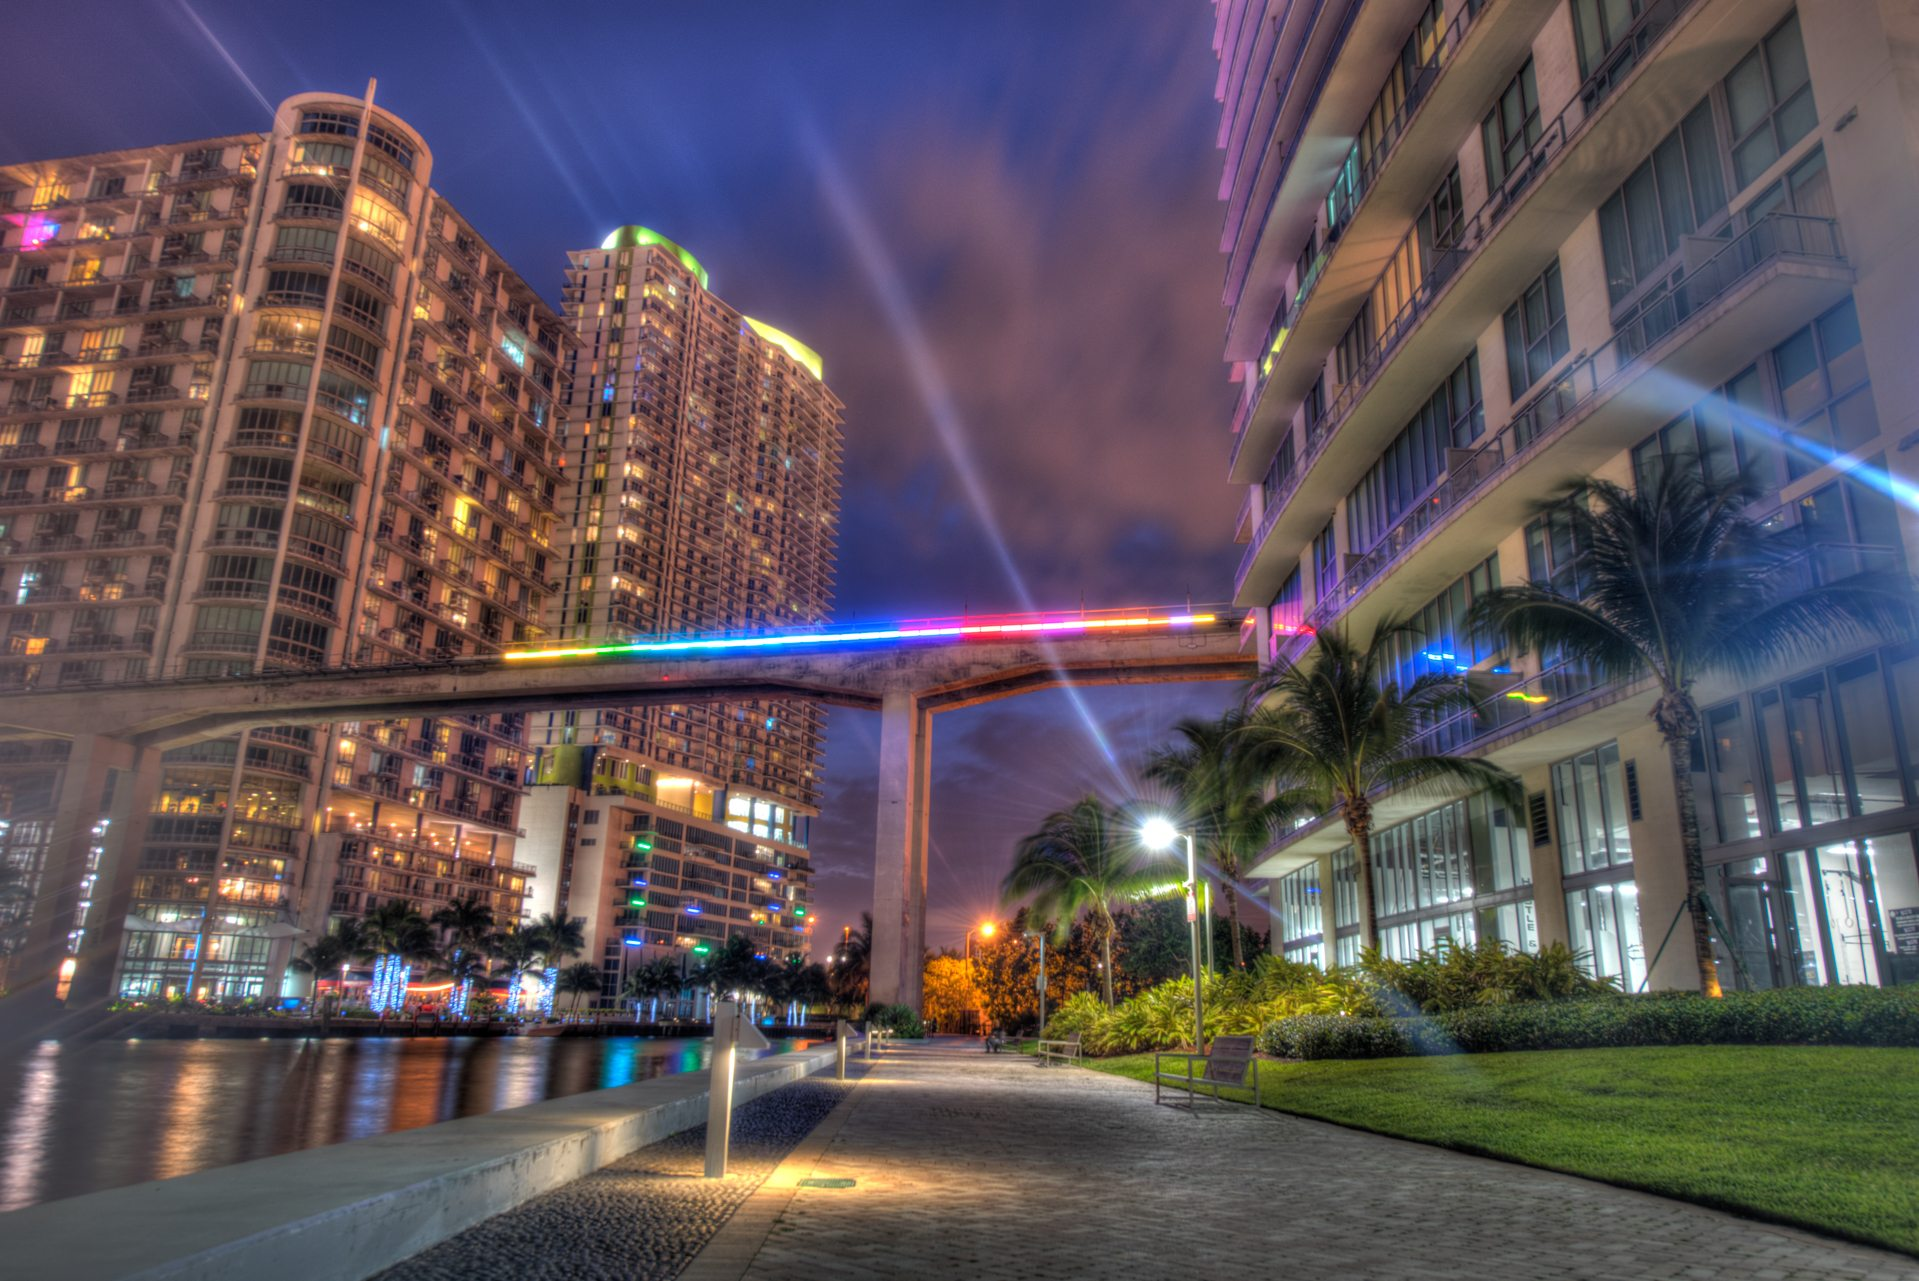 Miami Line LIghting Phase I. Photo by Lucas Lechuga.